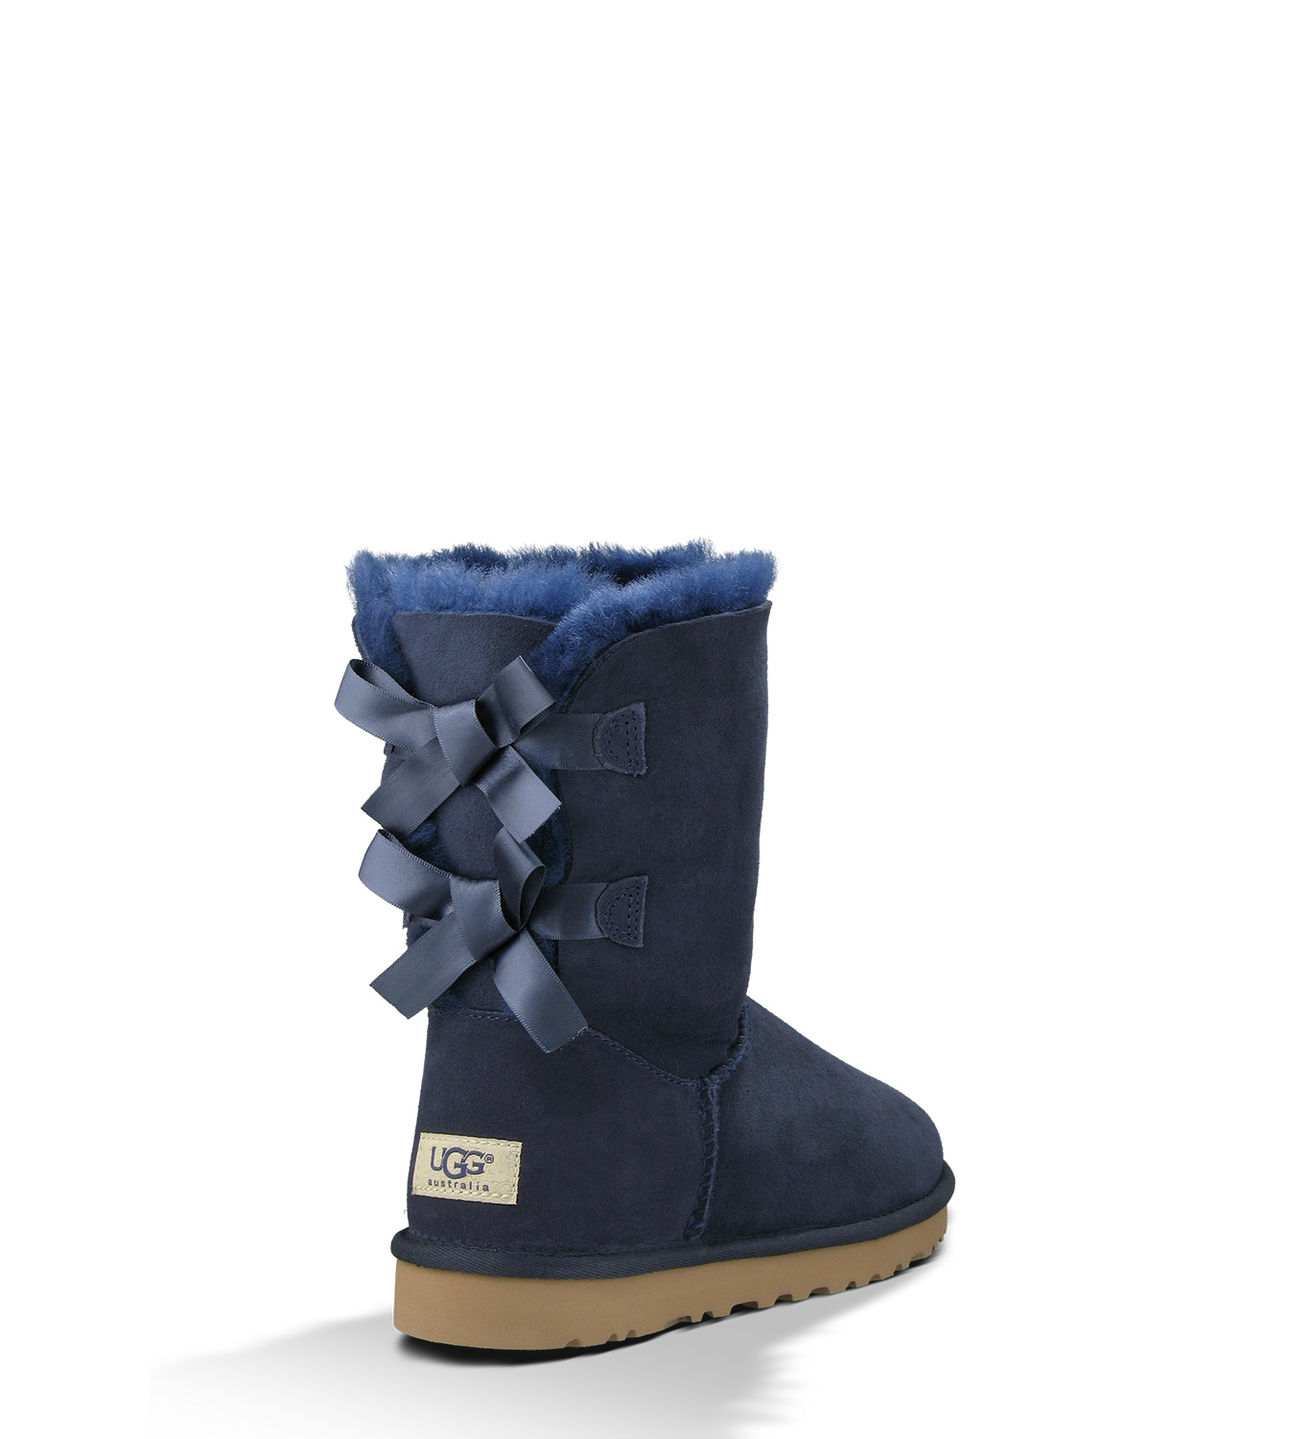 UGG® Official | Women's Bailey Bow Footwear | Free Ground Shipping